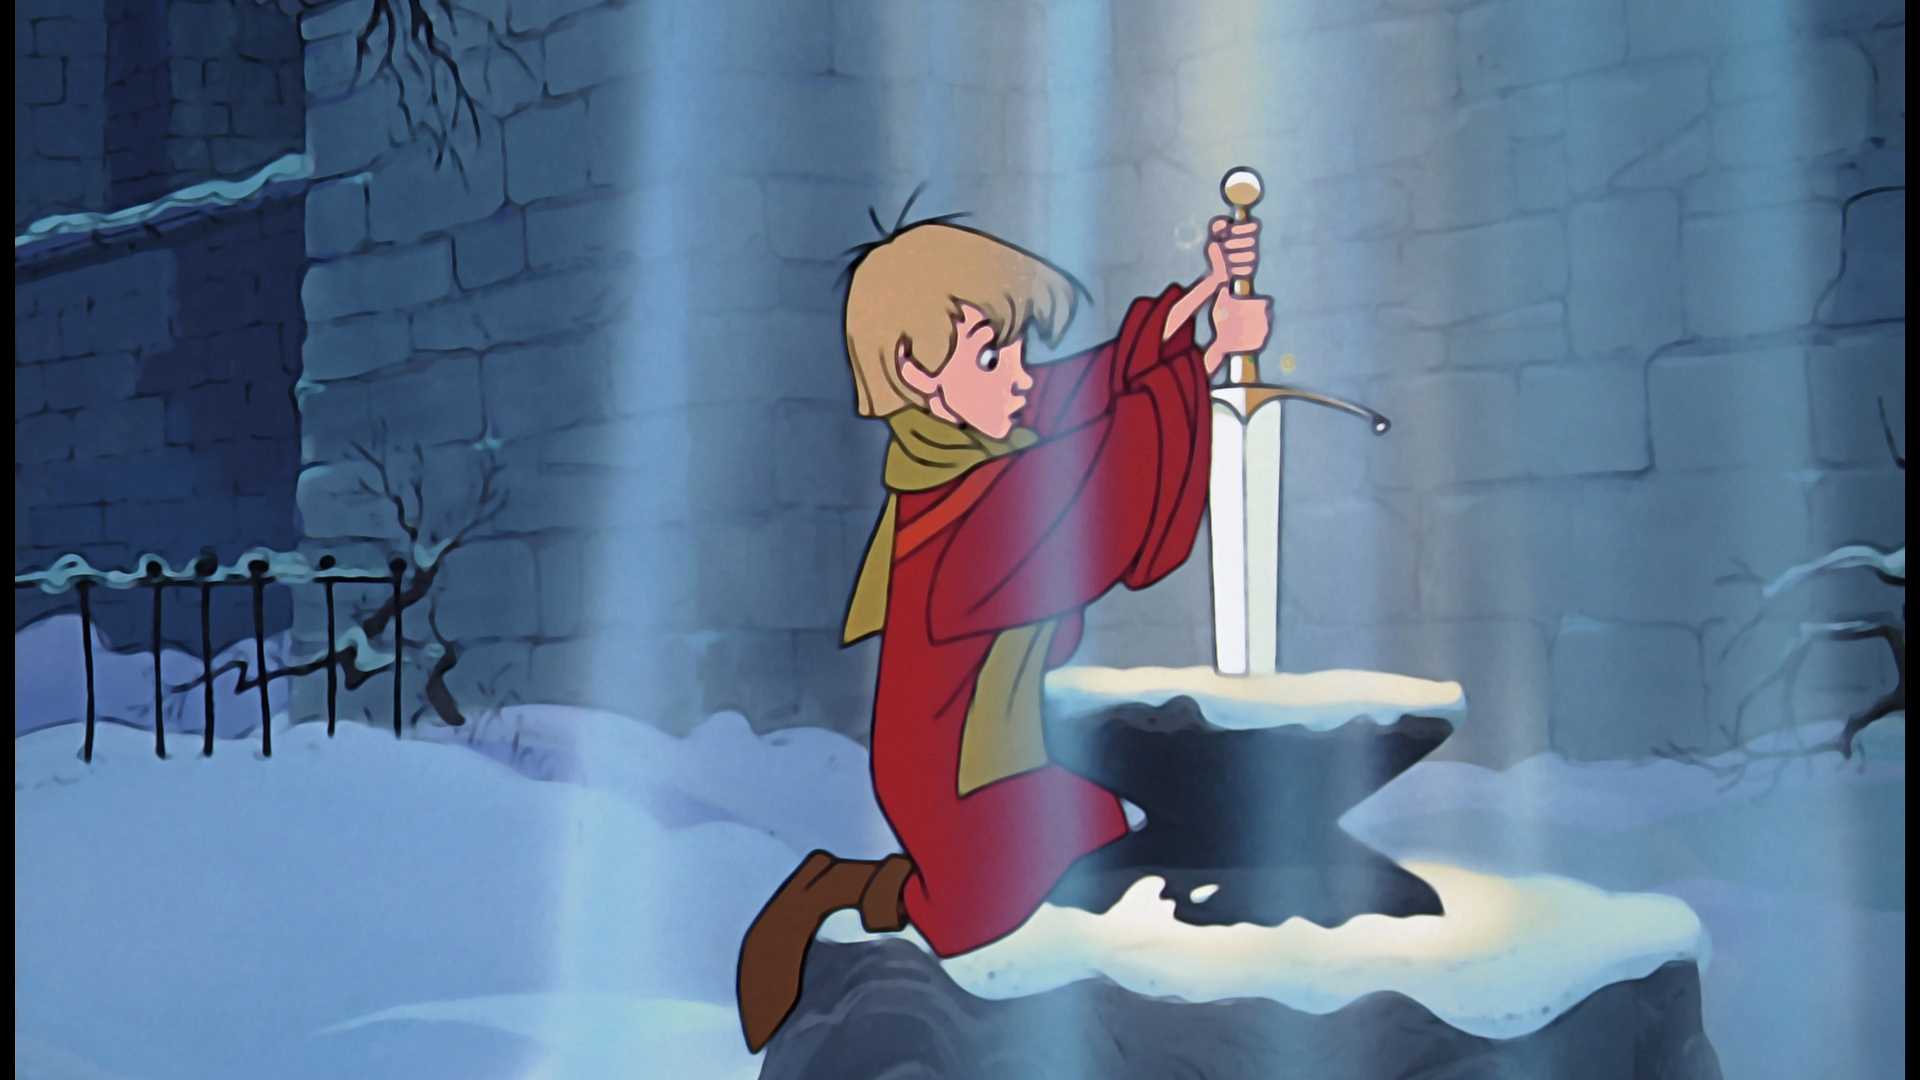 Game Of Thrones Writer Signs Up For A Disney Remake Of Sword In